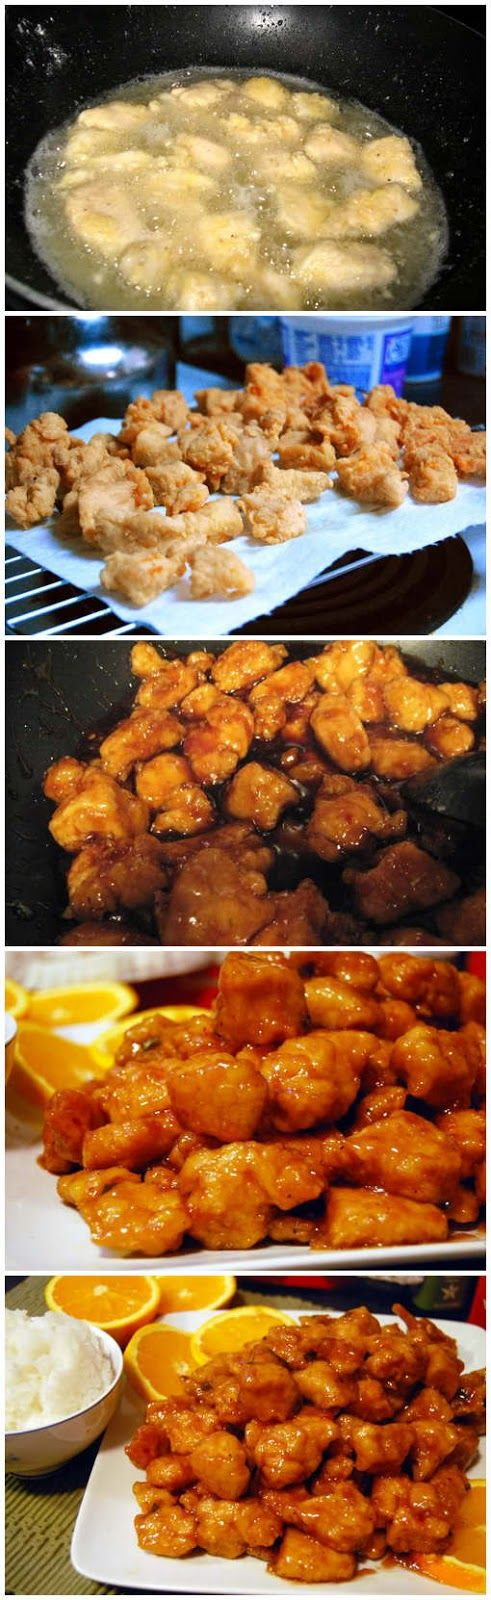 Panda Express Orange Chicken Recipe I tried this last night. Don't know if it was just like Panda's and I really don't care.    Ingredients ...